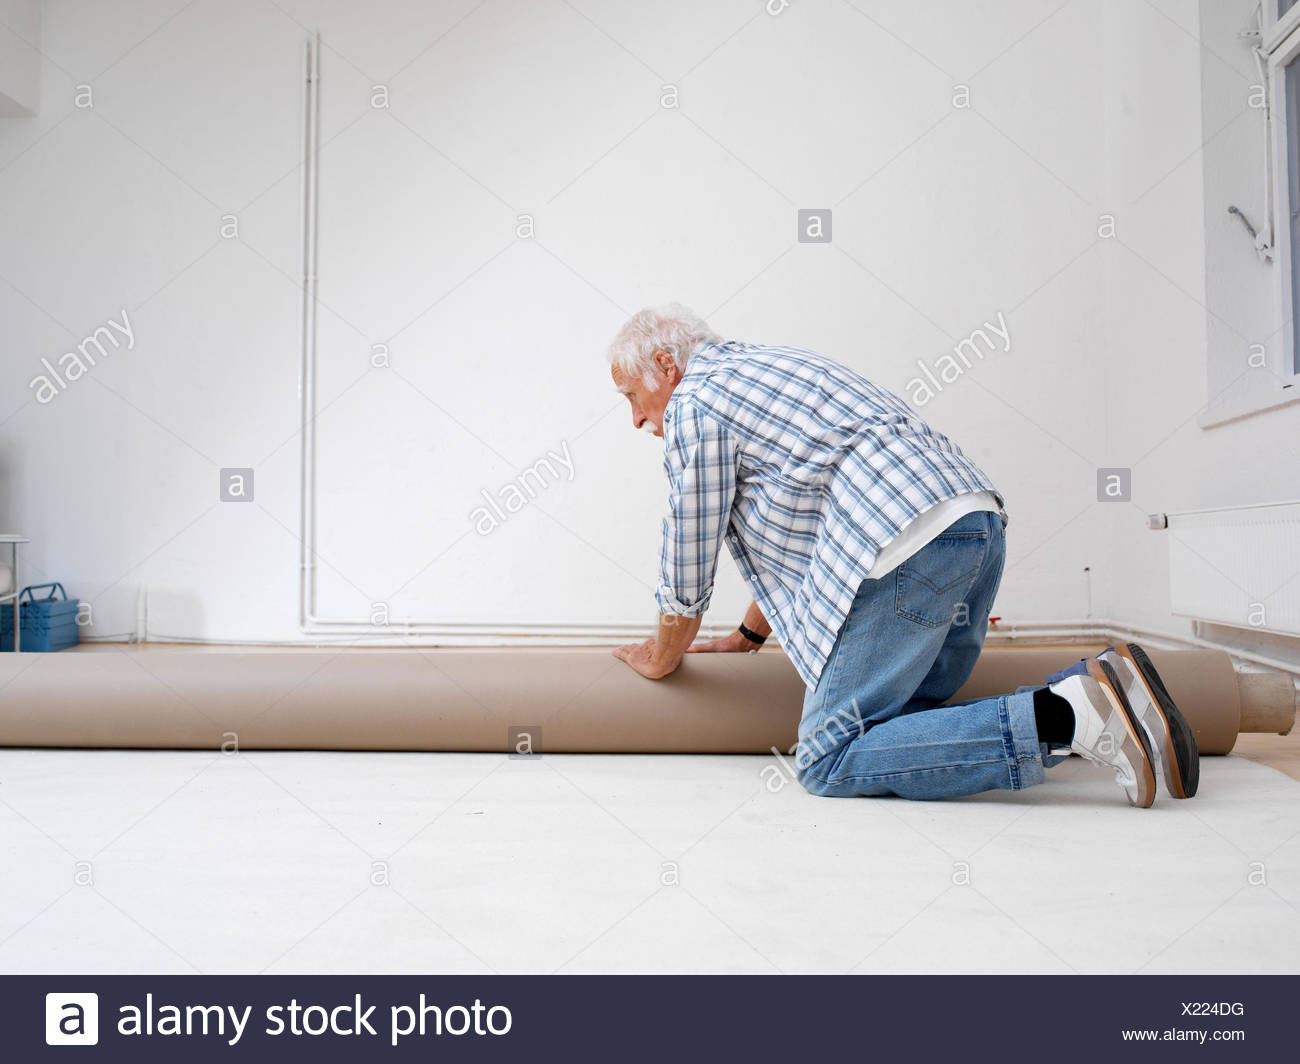 Do it yourselfers stock photos do it yourselfers stock images flat renovation works senior carpet lay 60 70 years solutioingenieria Gallery